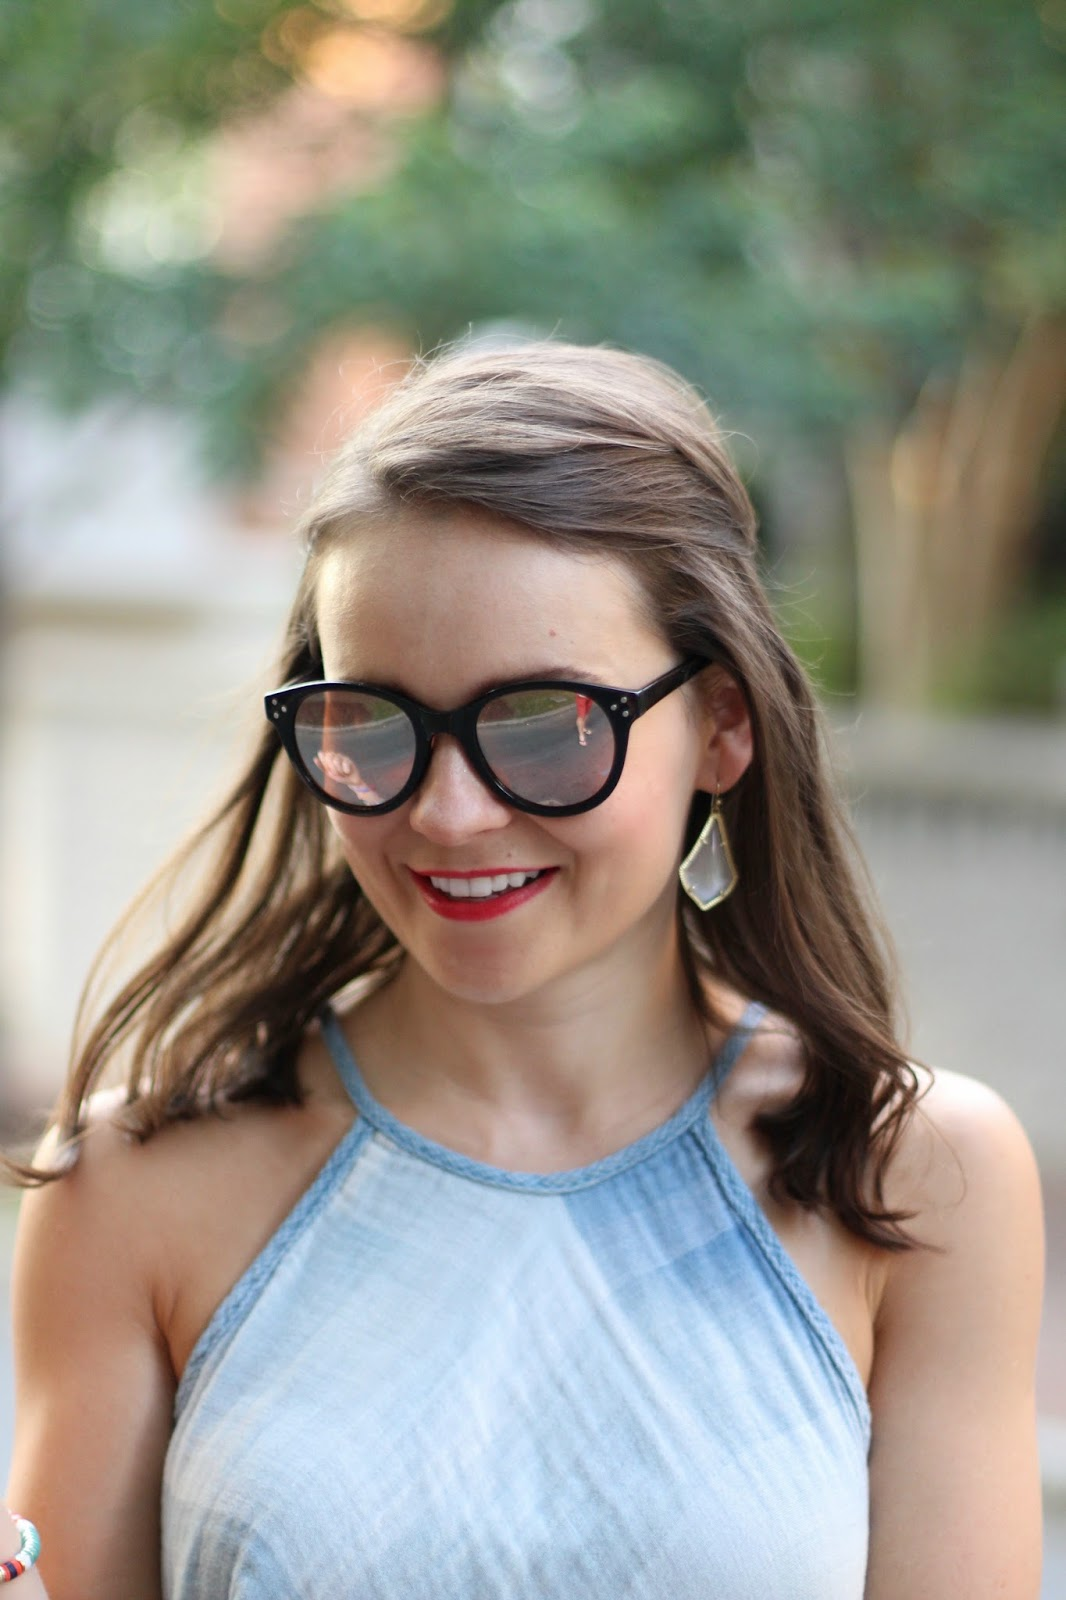 J.Crew factory sunglasses